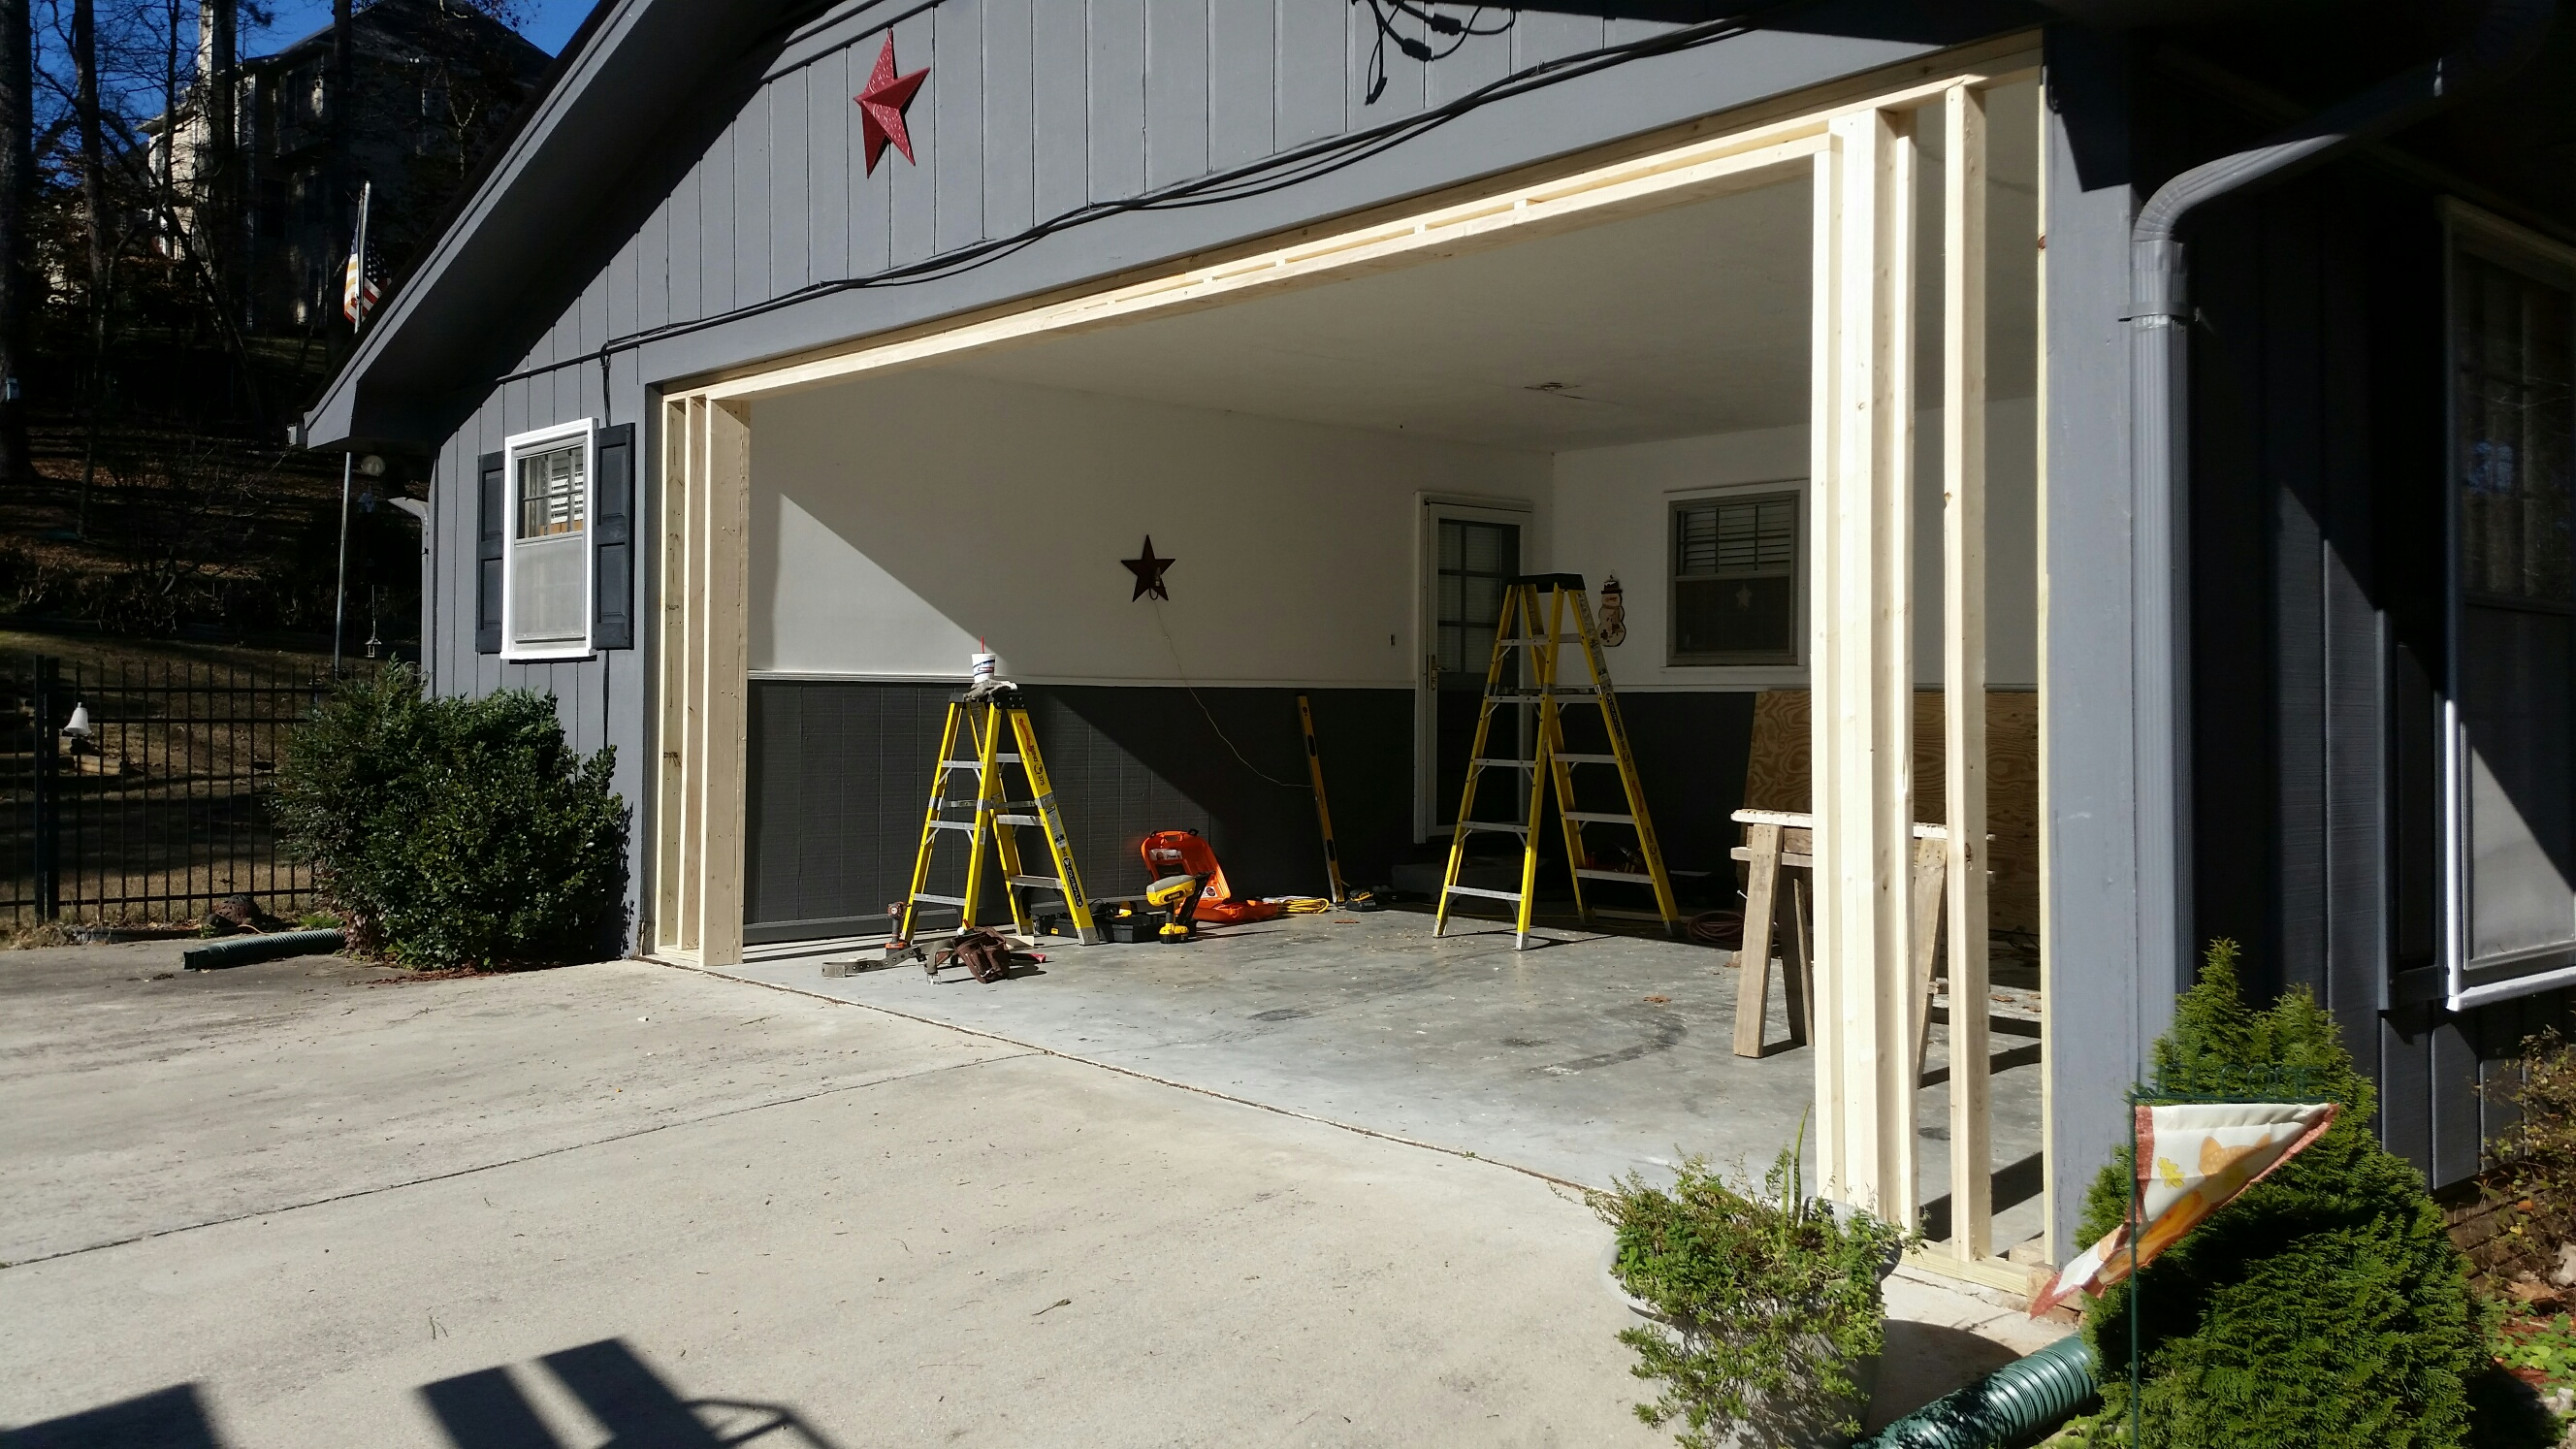 Carport To Garage Conversion | Overhead Door Of Georgia How To Make A Carport Into A Garage